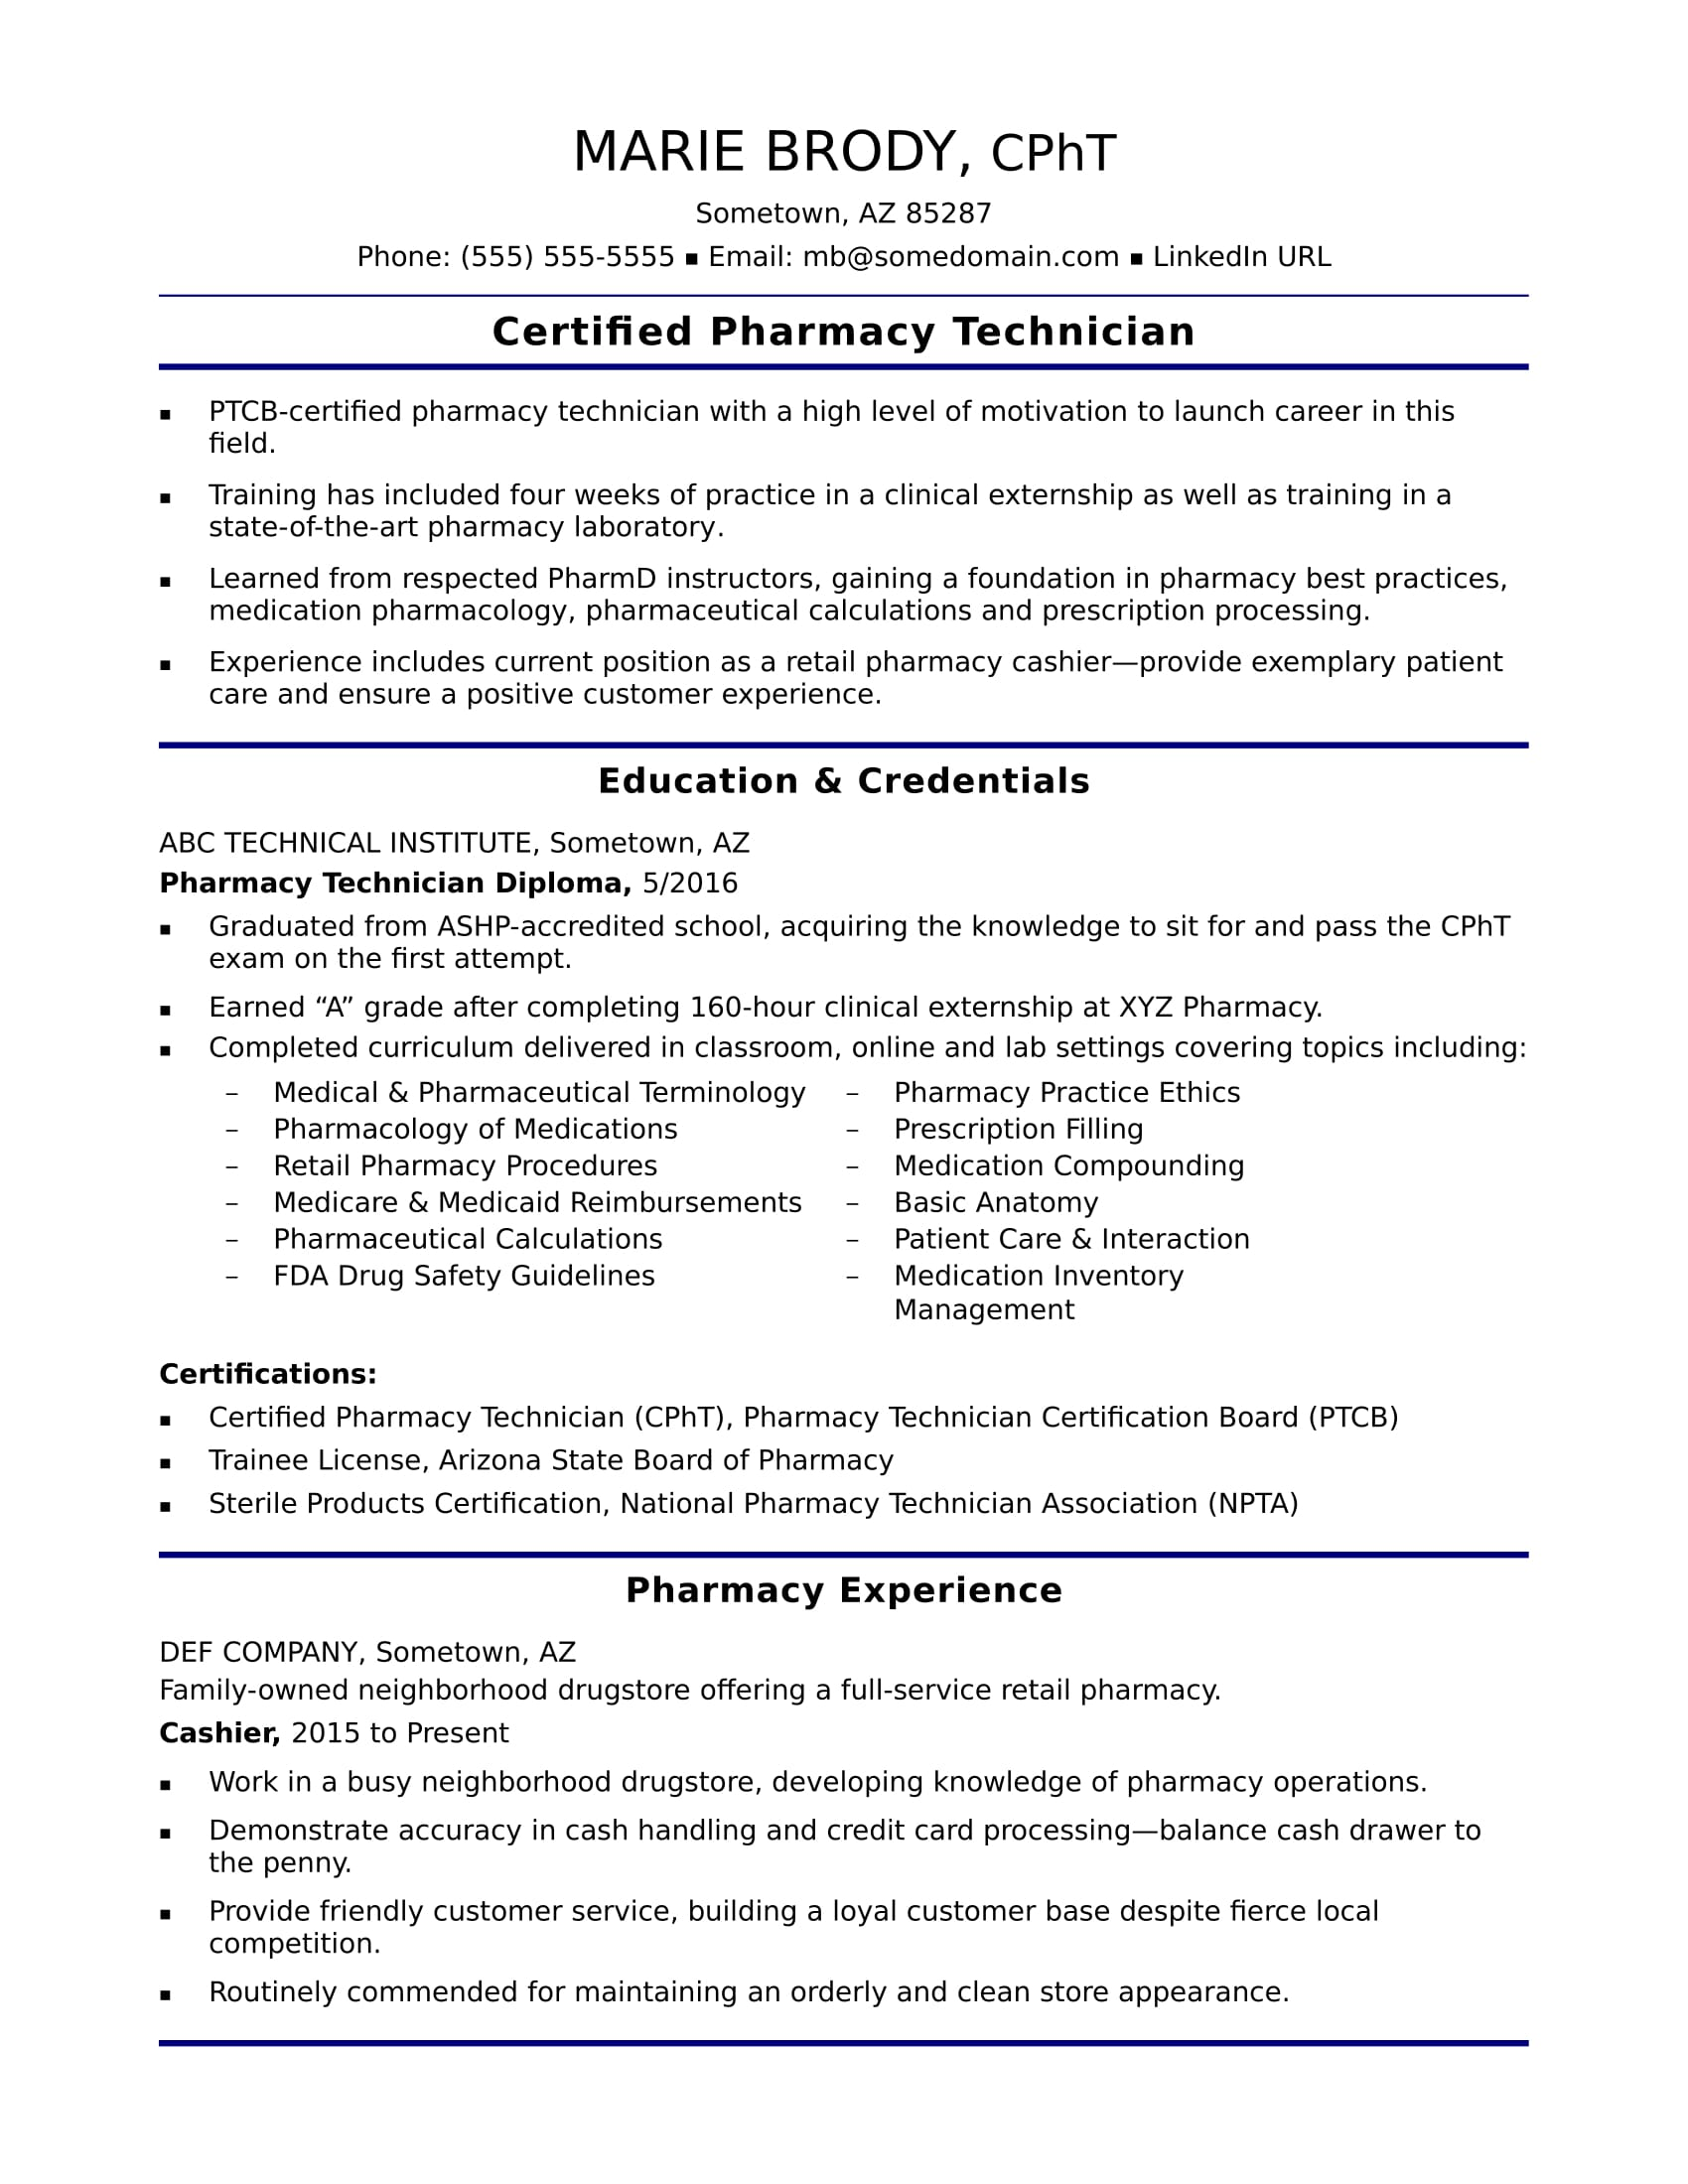 Awesome Sample Resume For An Entry Level Pharmacy Technician  Pharmacy School Resume